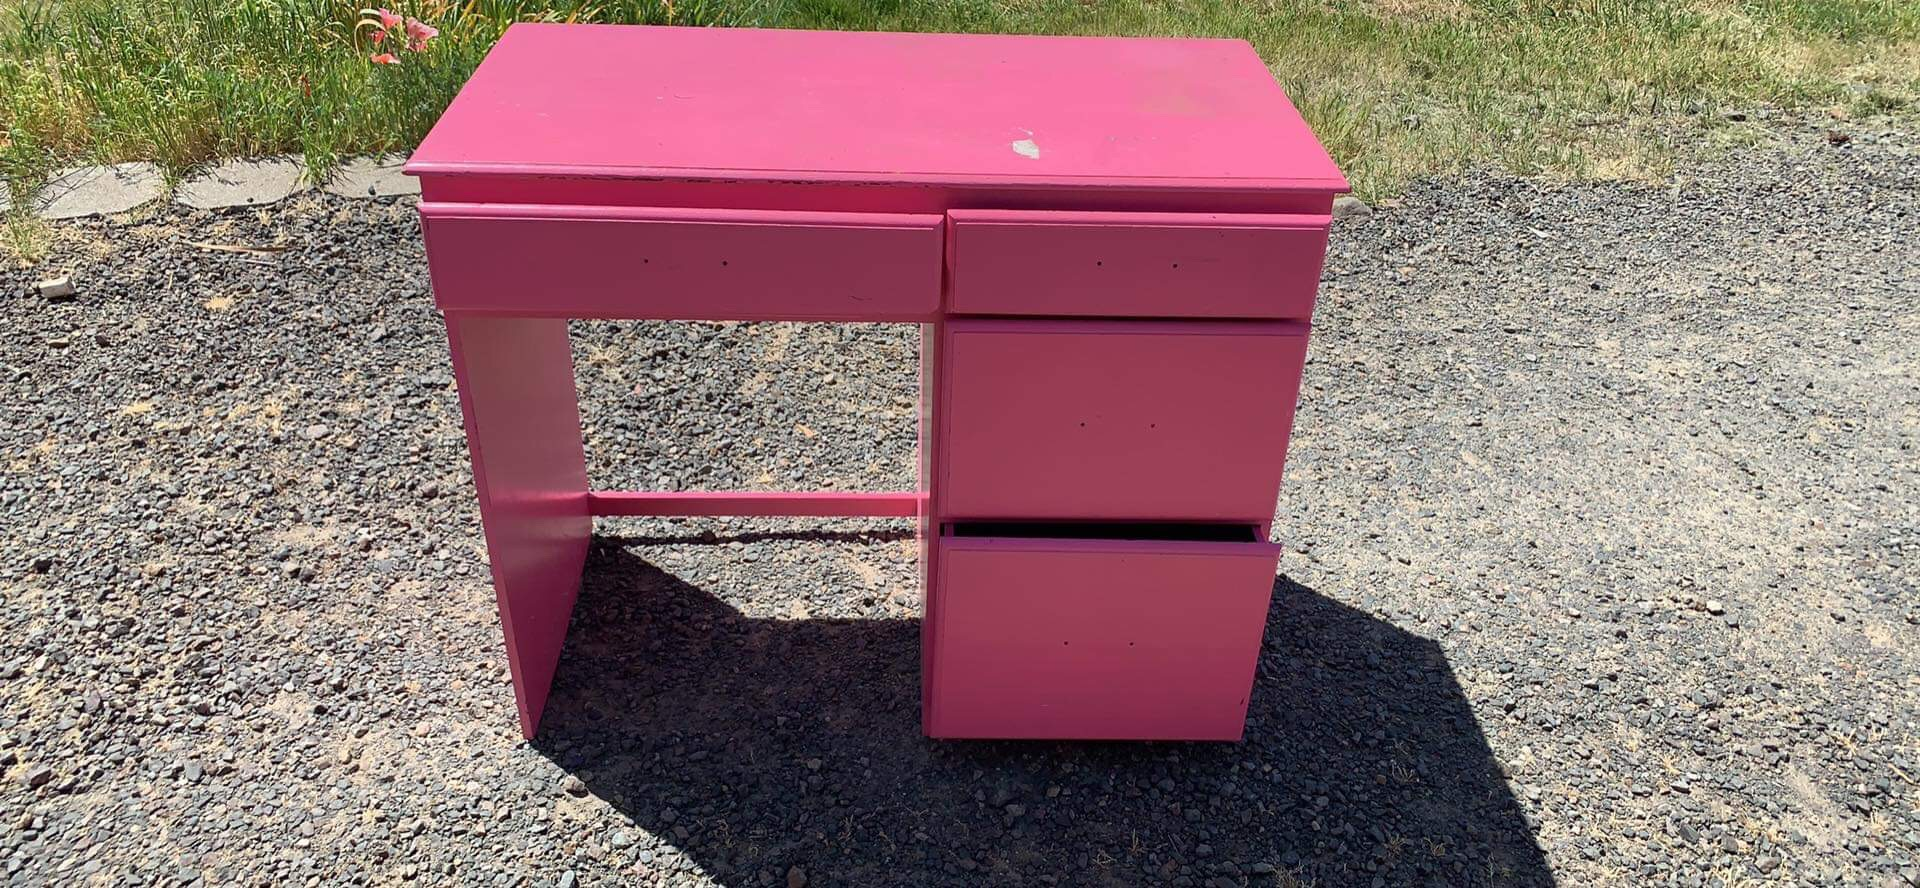 Incredible This Desk Used To Be Pink Youll Never Believe What Color Download Free Architecture Designs Scobabritishbridgeorg